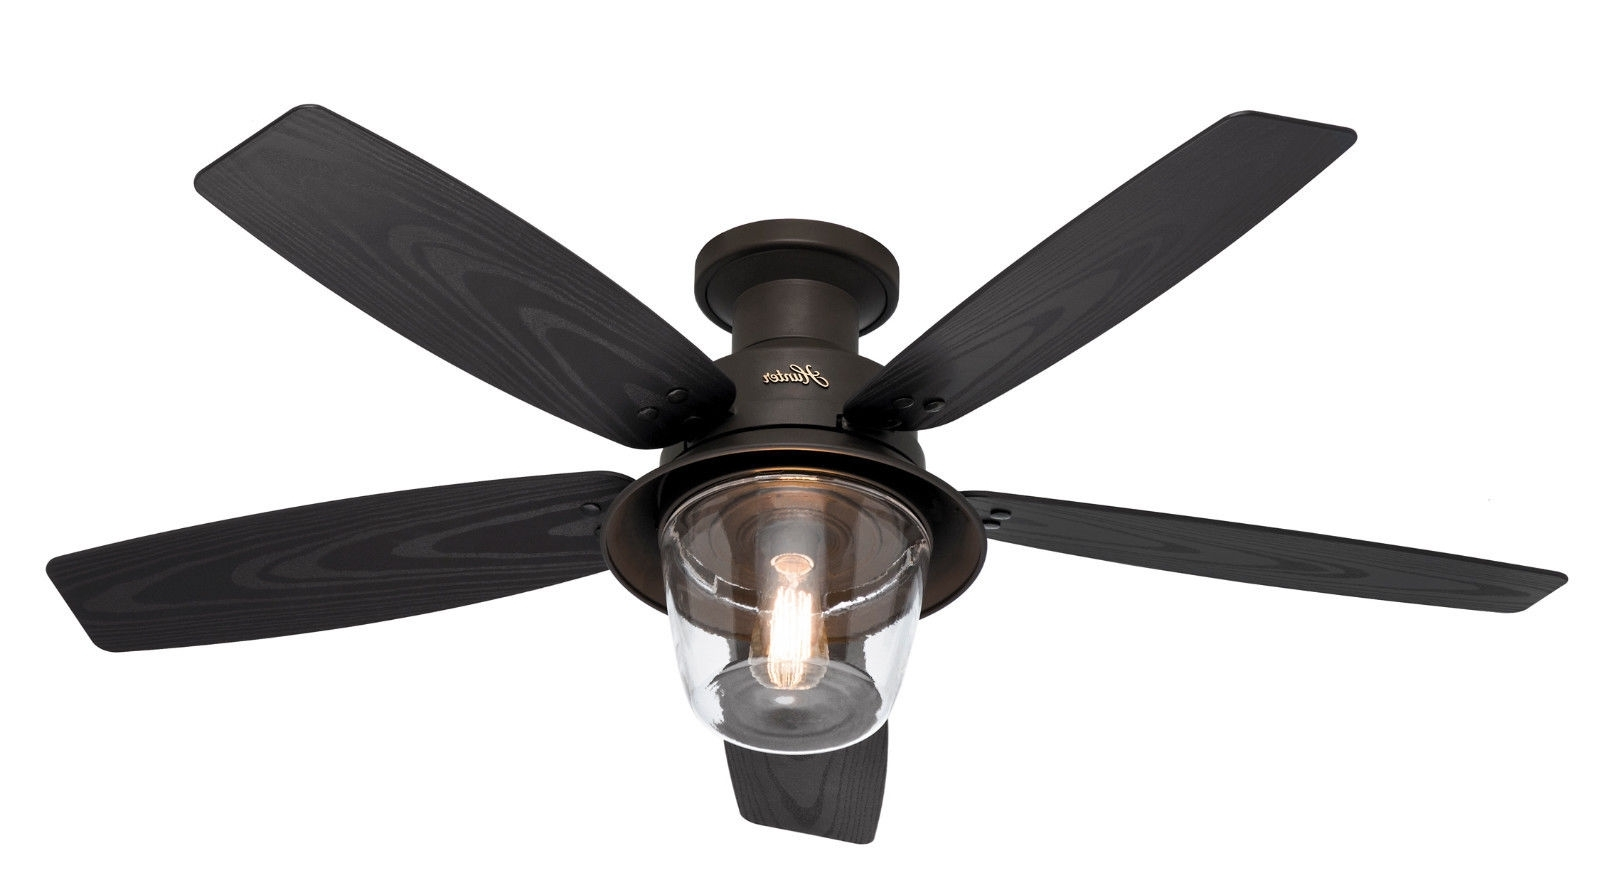 Most Current Ceiling: Astounding Small Outdoor Ceiling Fan Hunter Outdoor Ceiling Regarding Grey Outdoor Ceiling Fans (View 13 of 20)